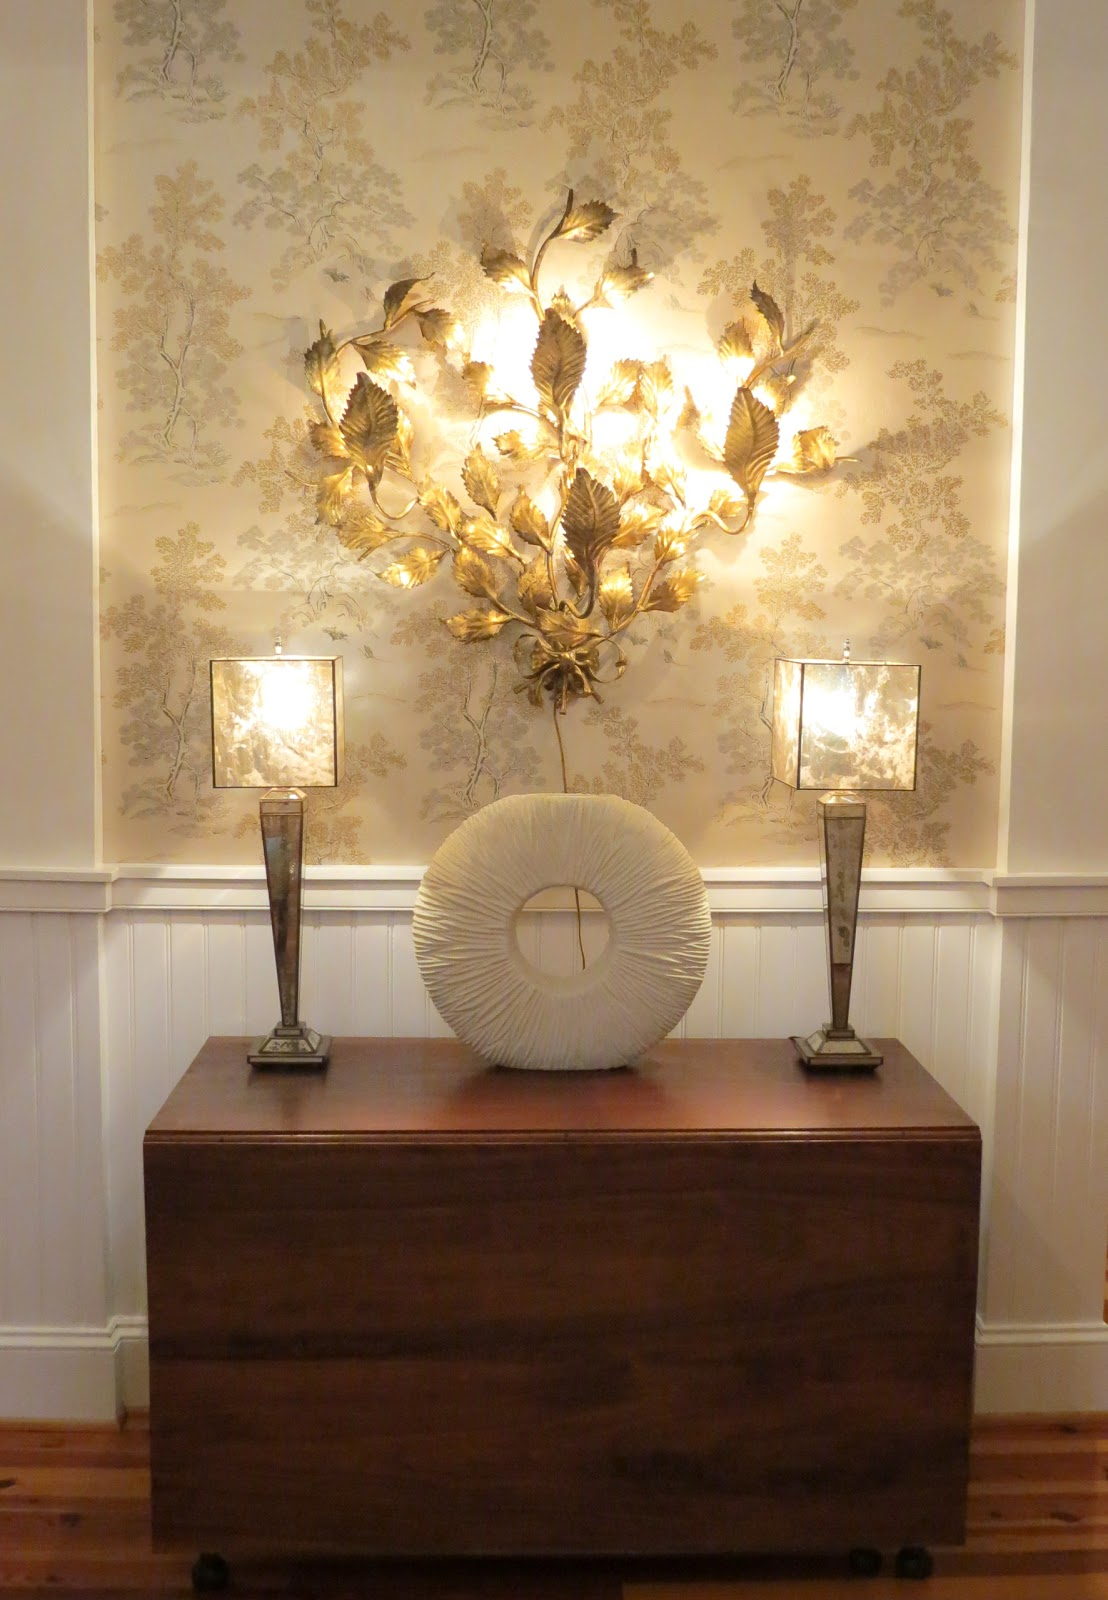 Free Download Wallpaper Accent Wall Foyer Antique And Modern 1108x1600 For Your Desktop Mobile Tablet Explore 50 Gold Accent Wallpaper Accent Wallpaper Ideas Accent Wall Wallpaper Gold Design Wallpaper